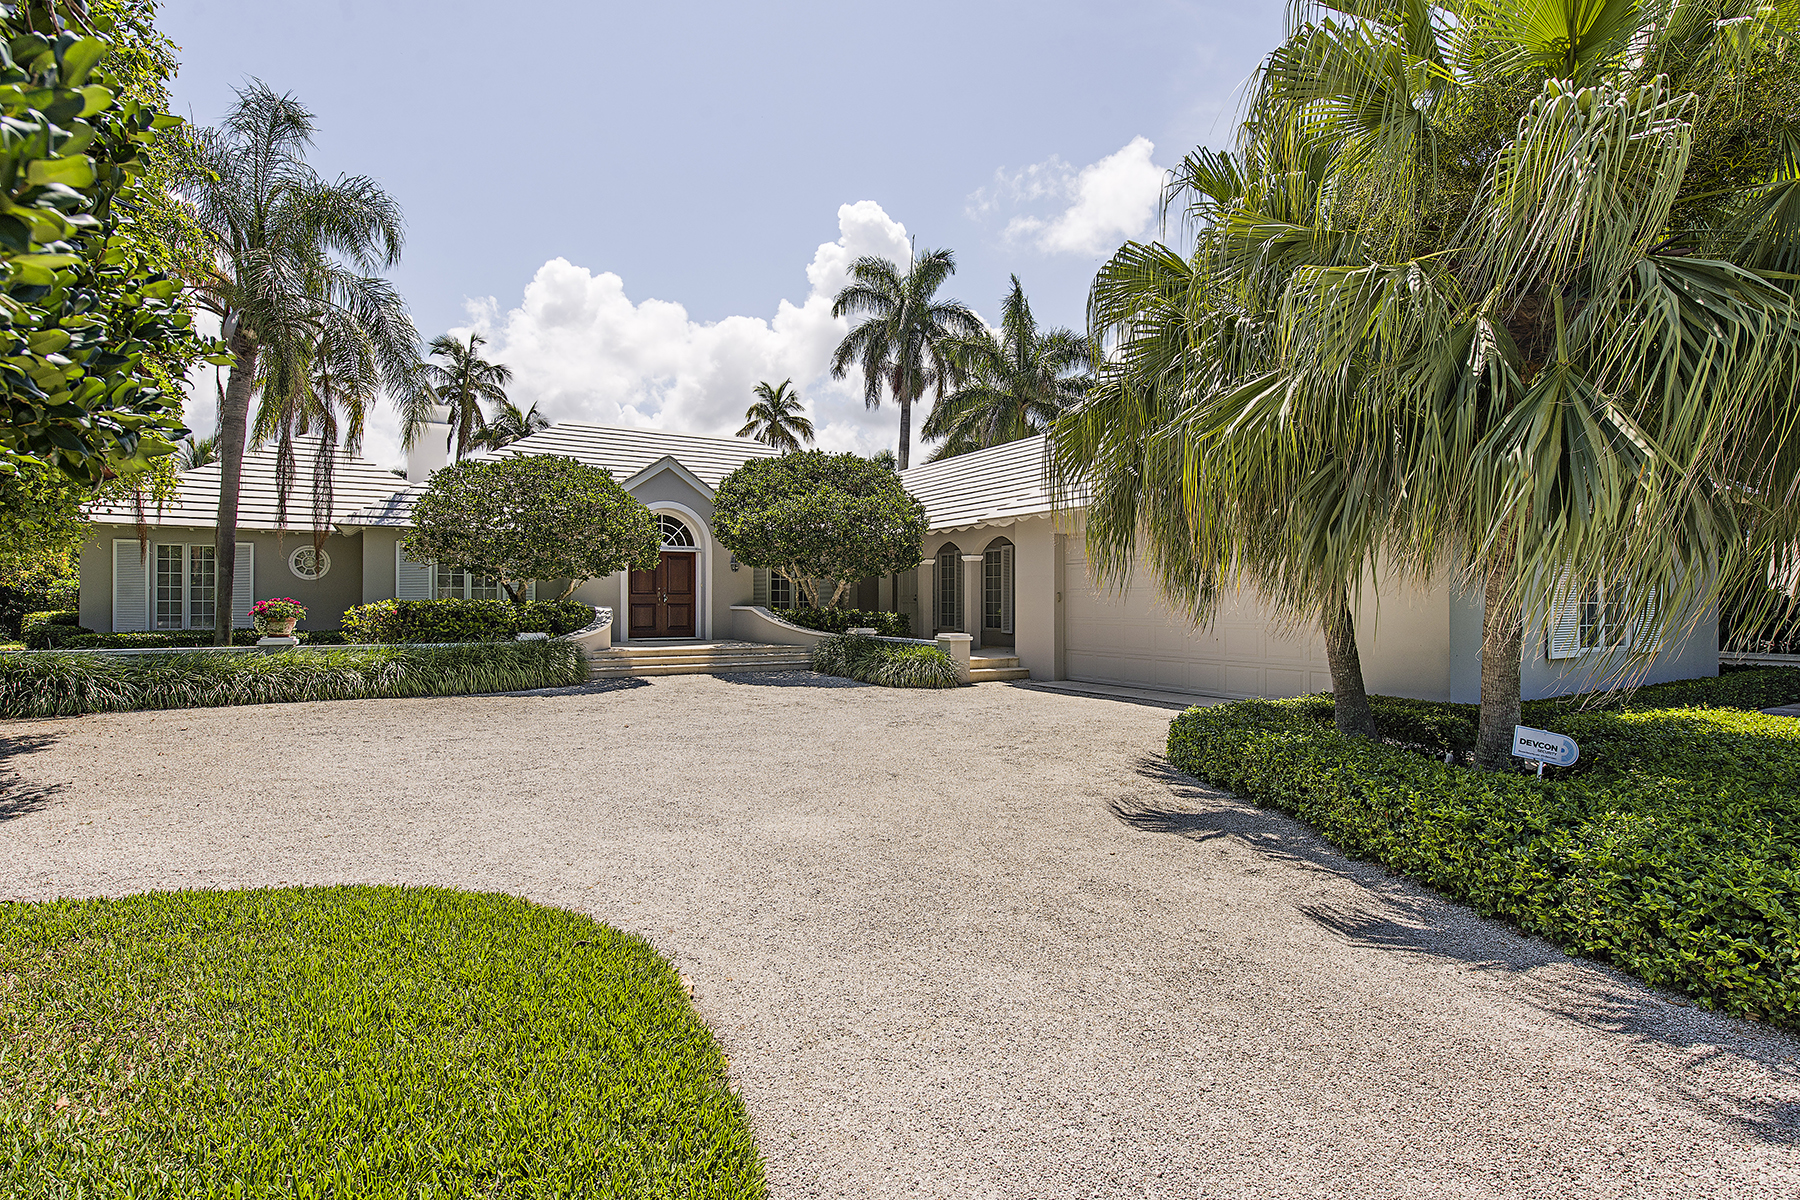 Single Family Home for Rent at PORT ROYAL 3323 Gin Ln, Naples, Florida 34102 United States